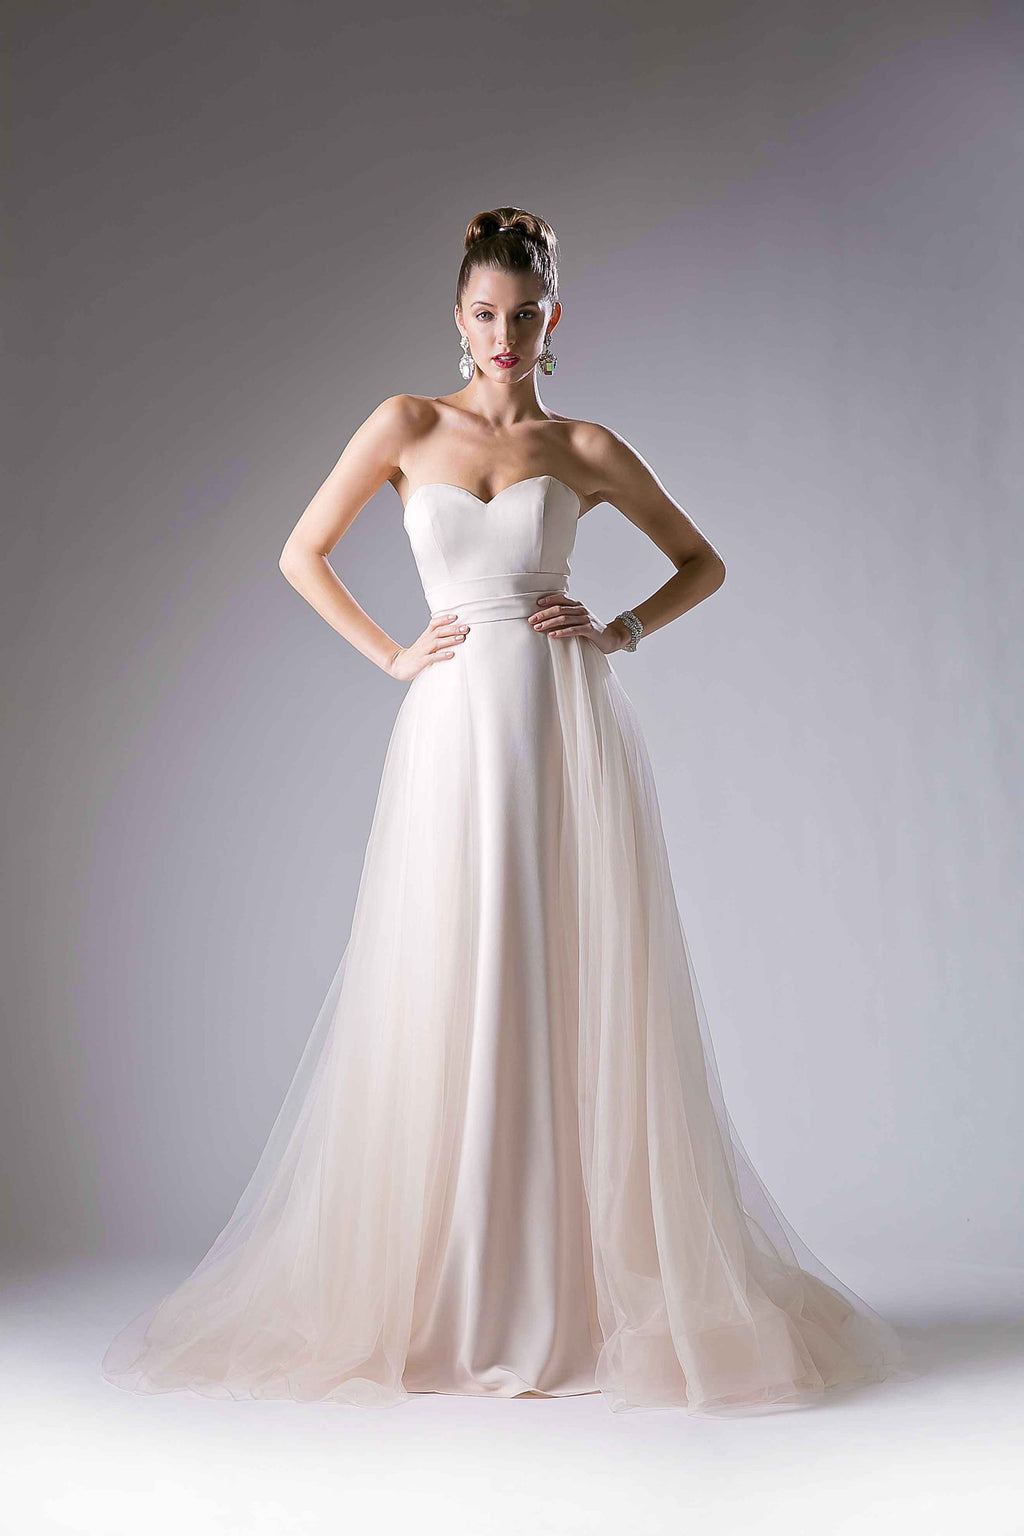 Flowing Satin Dress with Sweetheart Neckline Style #CA13492